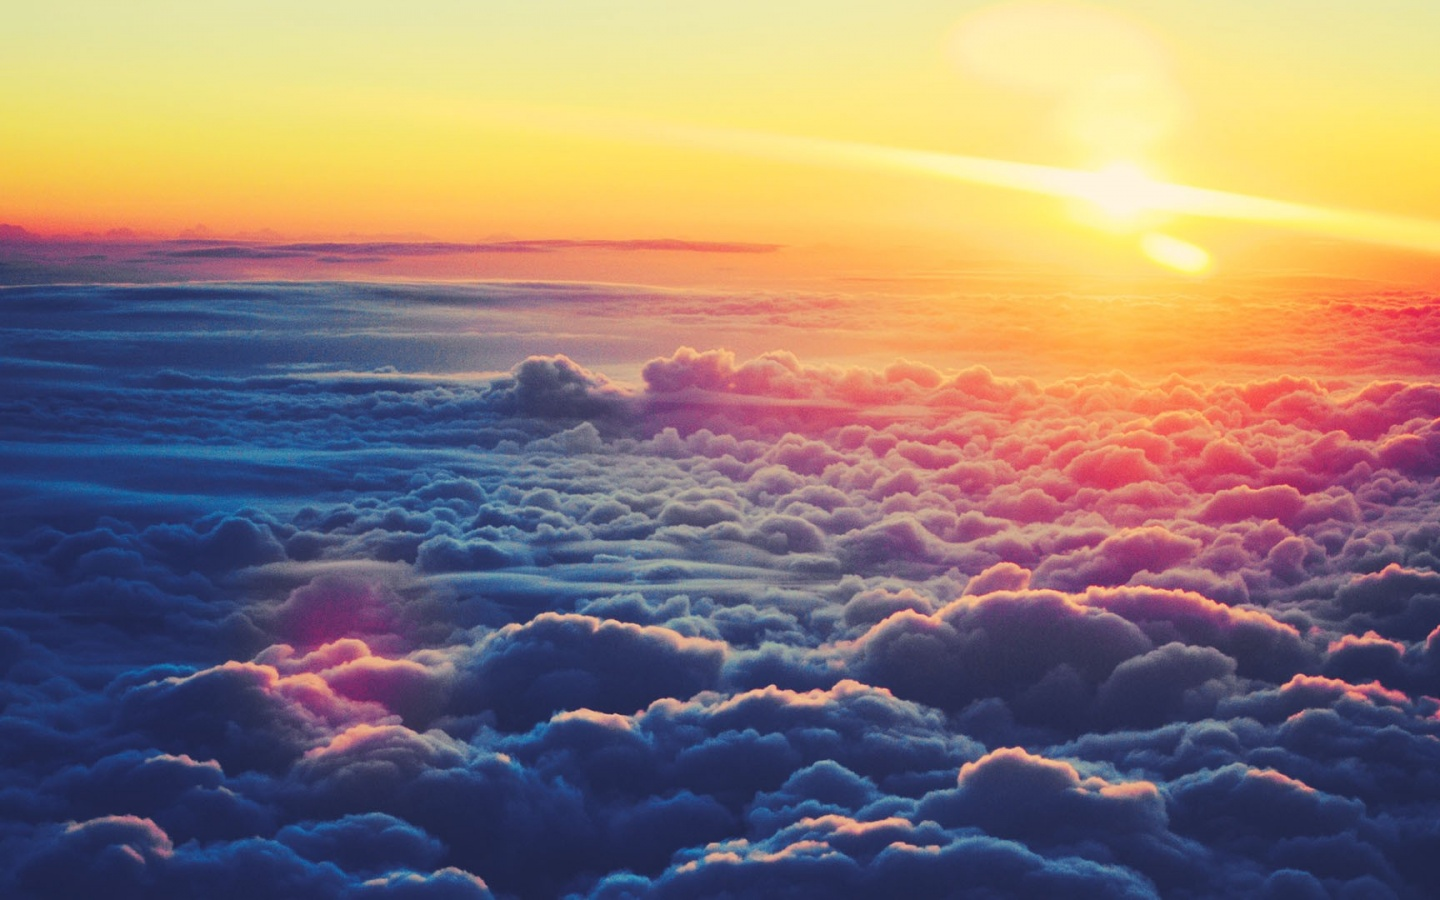 1440x900 Sunrise Above the Clouds desktop PC and Mac wallpaper 1440x900